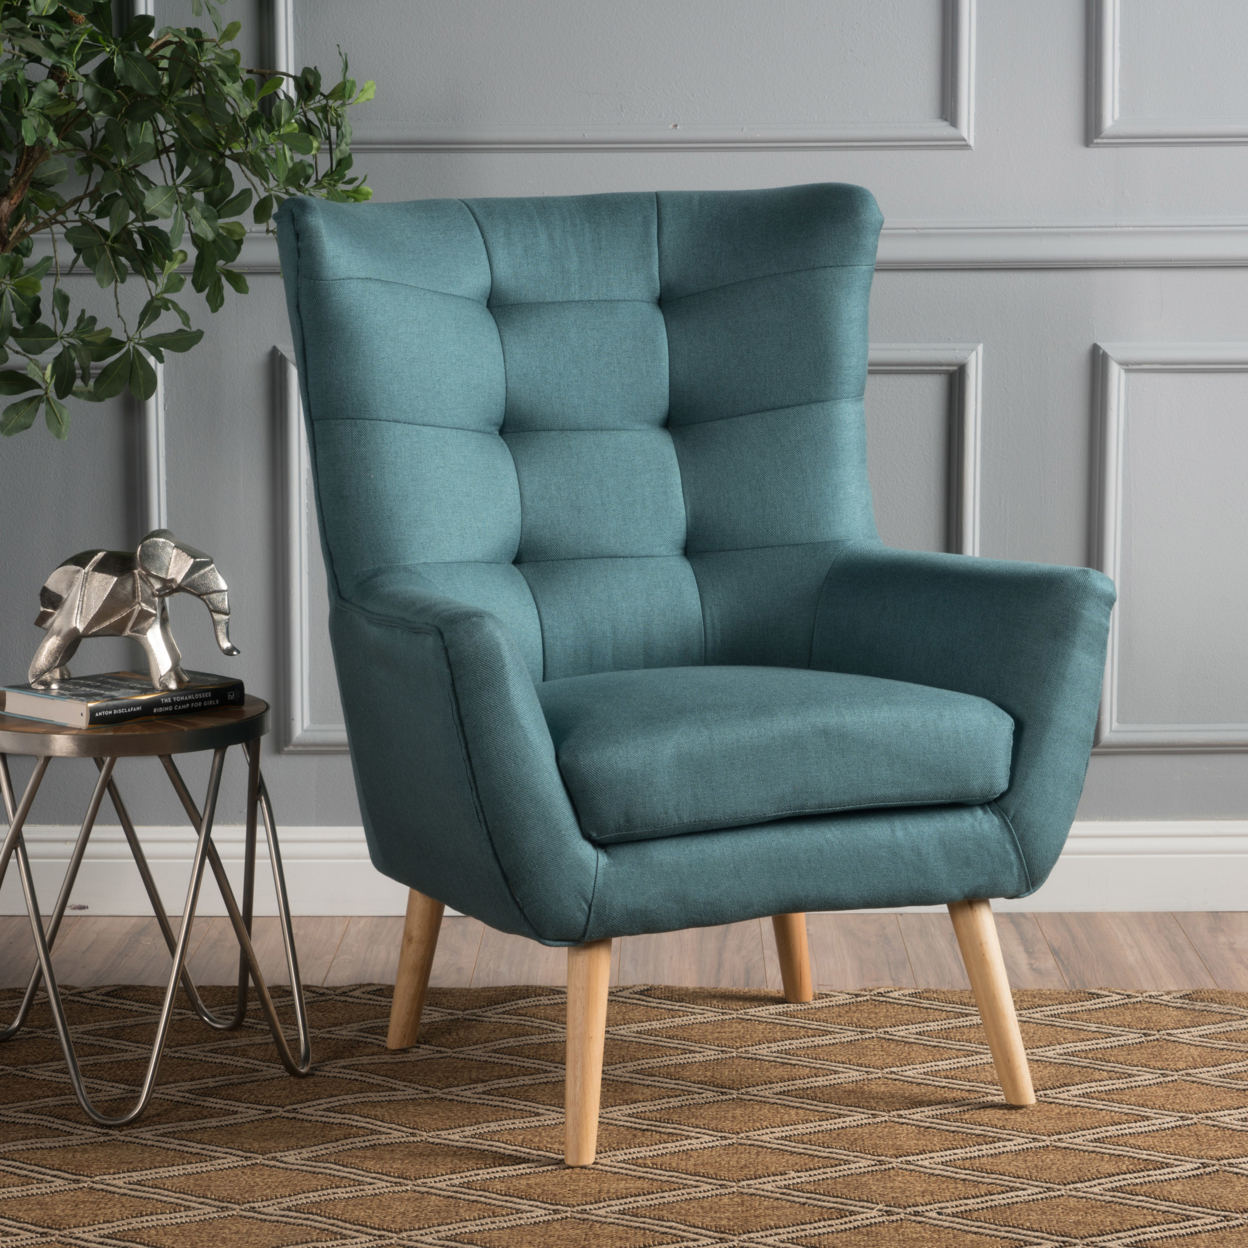 Temescal Mid Century Modern Dark Teal Fabric Club Chair anso contemporary teal color fabric accent chair